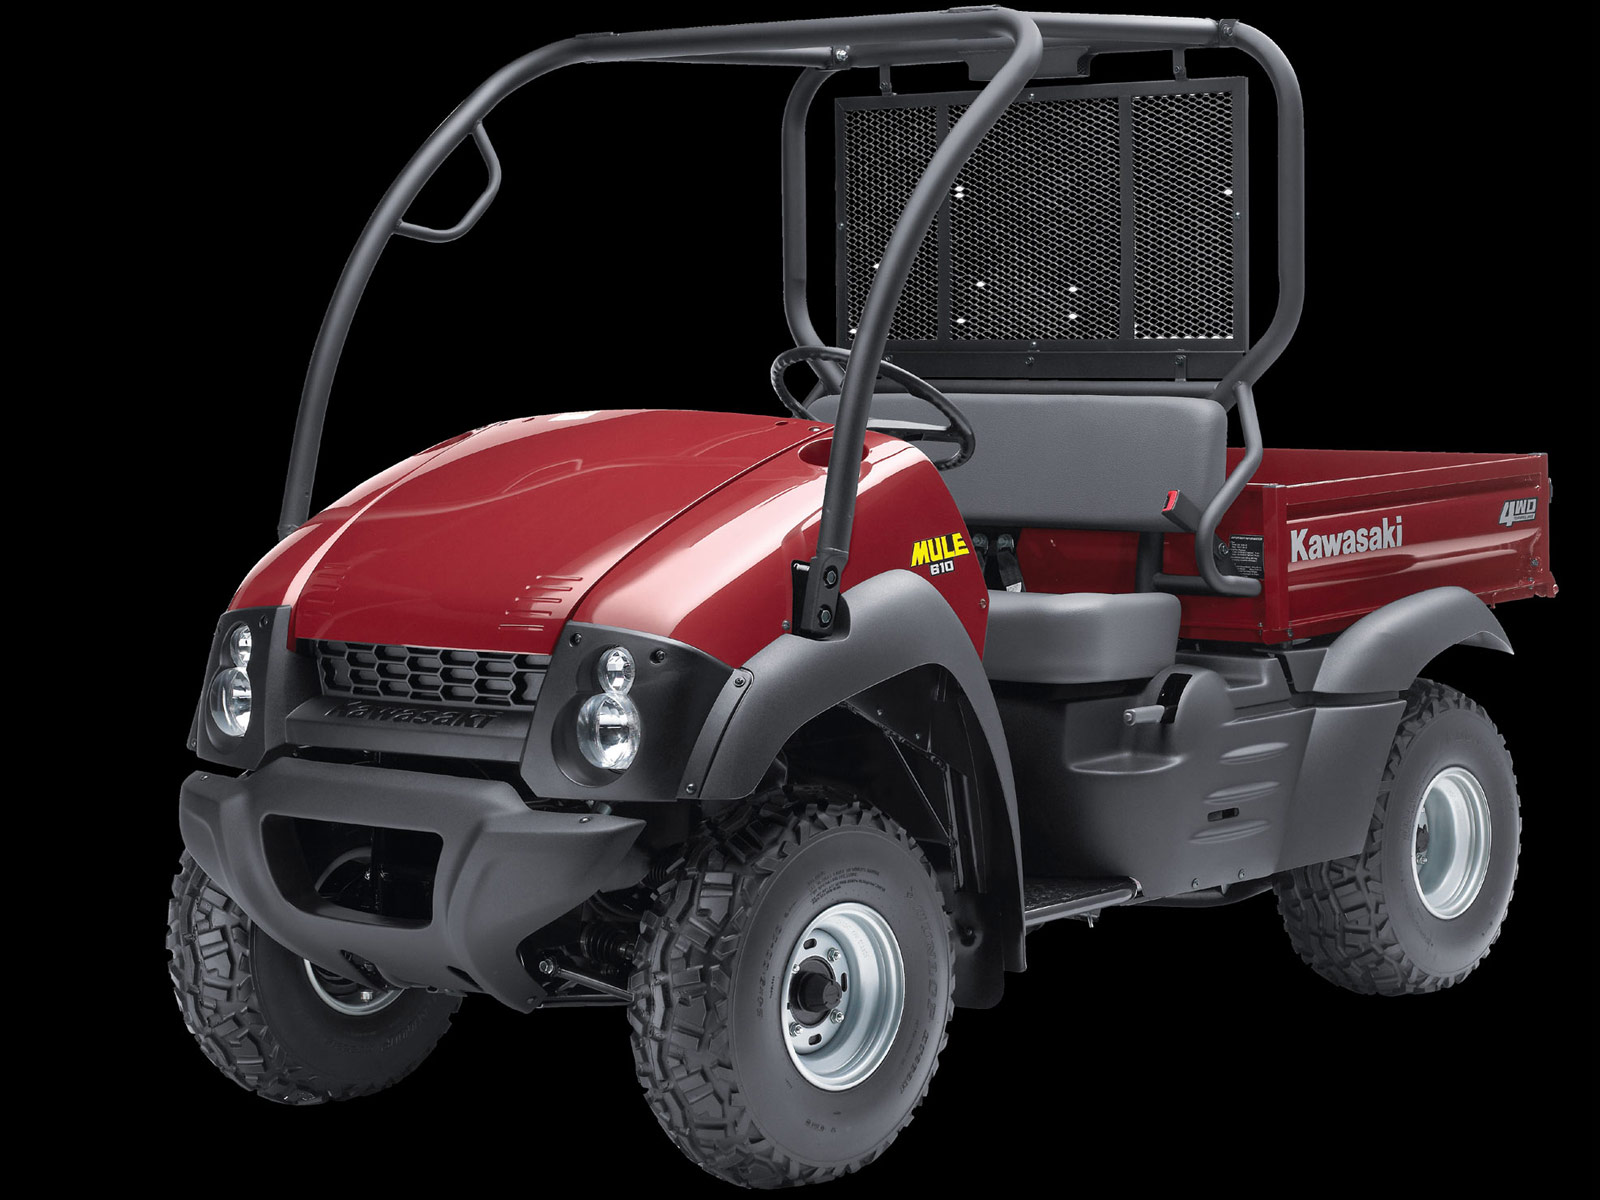 2013 Kawasaki Mule 610 4x4 ATV Insurance Information  pictures